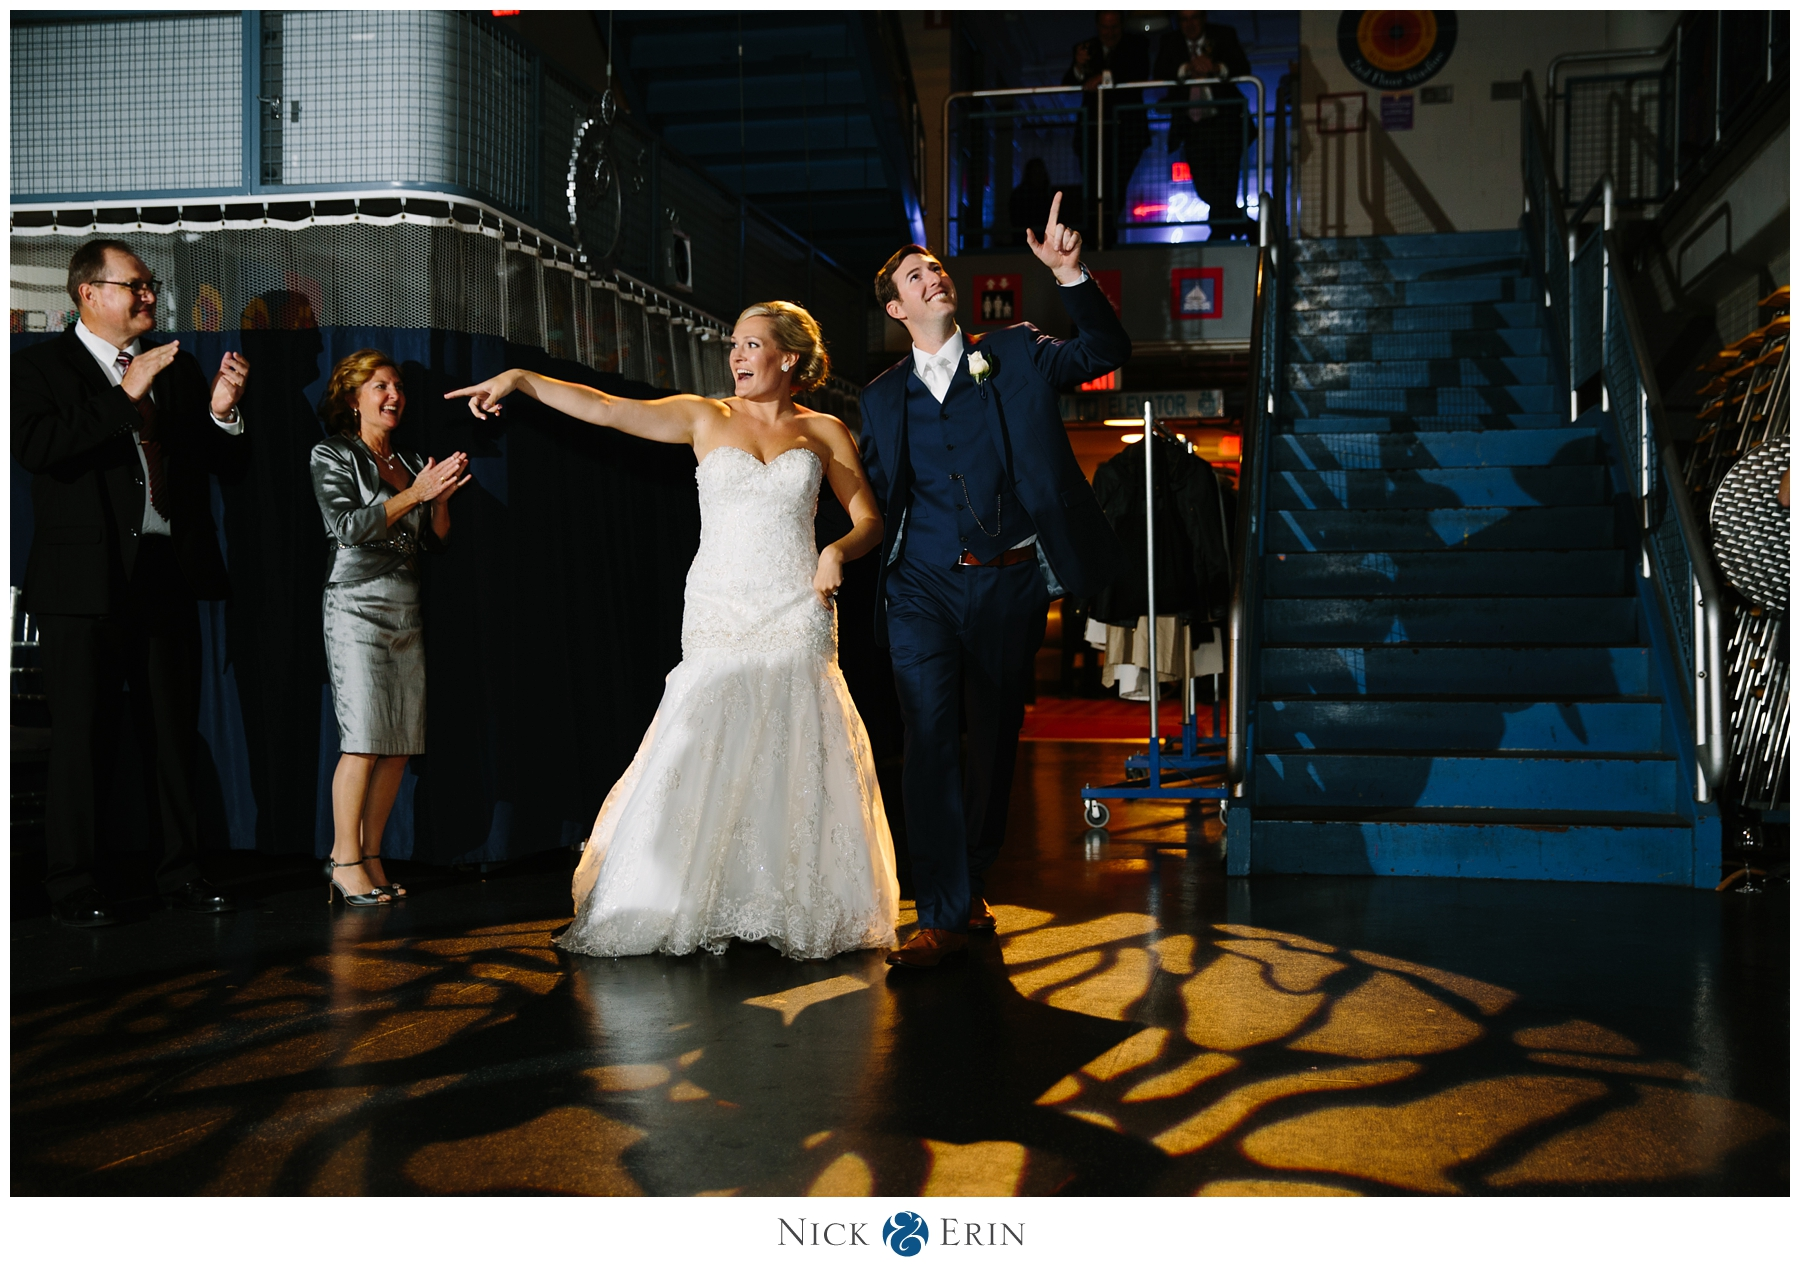 Donner_Photography_Torpedo Factory Wedding_Courtney and Scott_0050